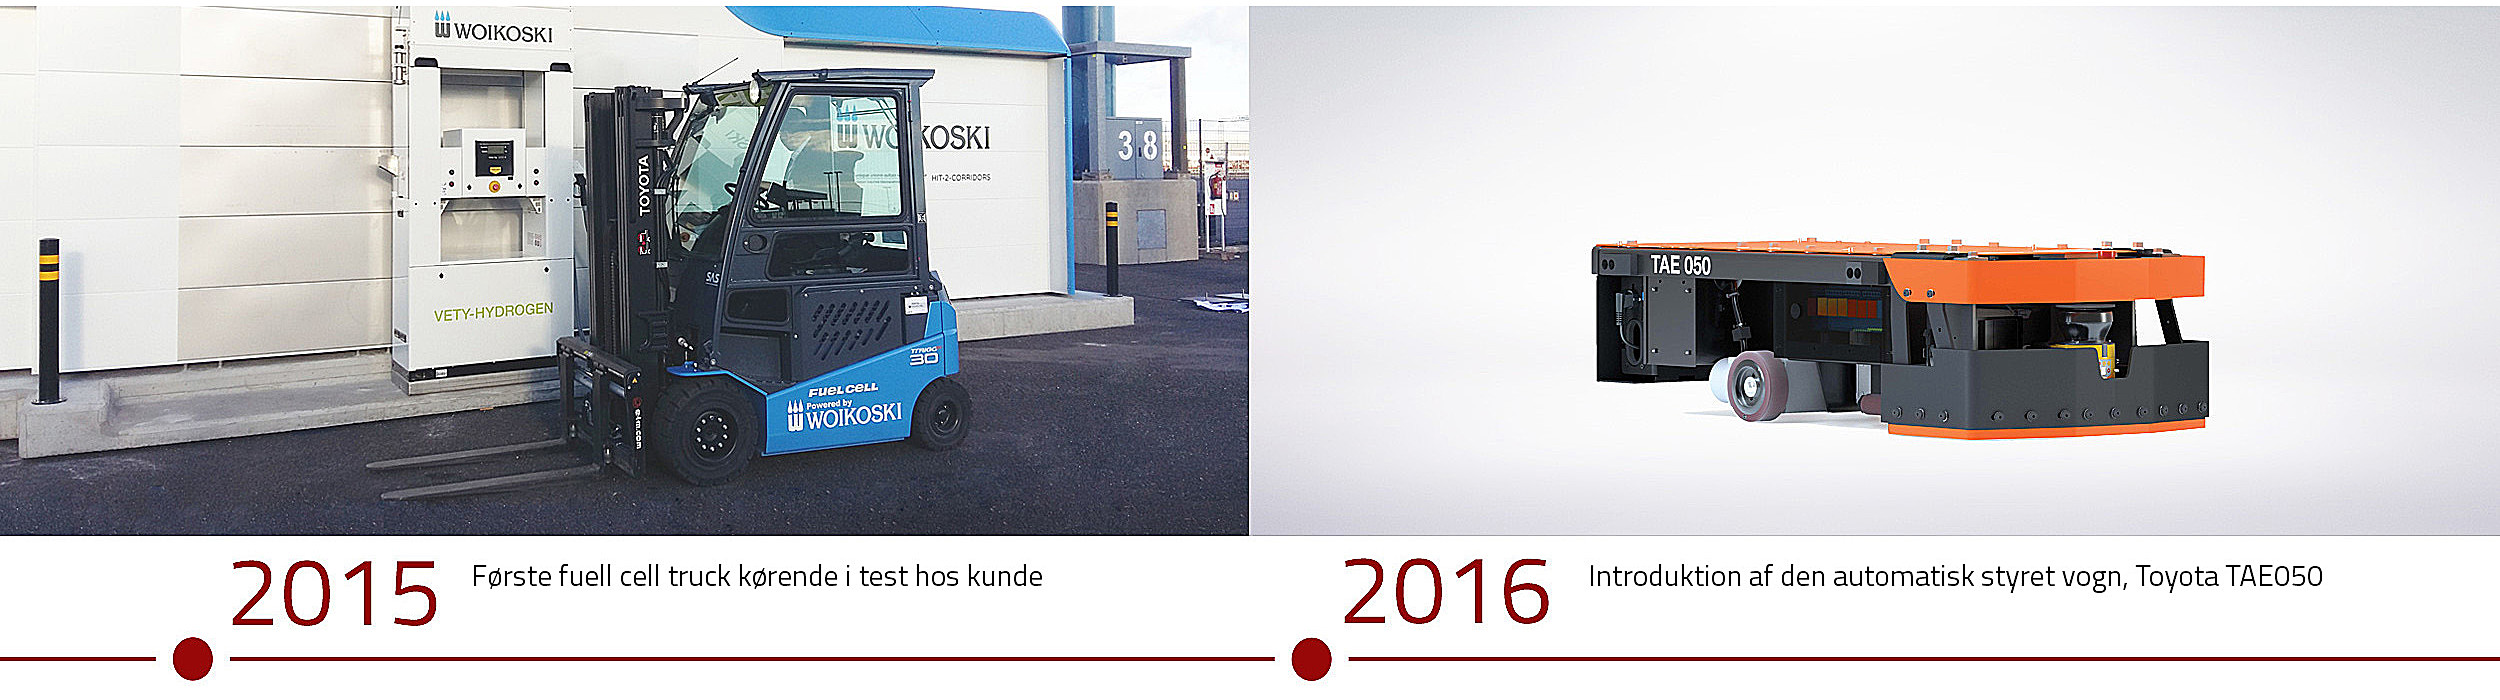 Historie Toyota Material Handling 2015 and 2016